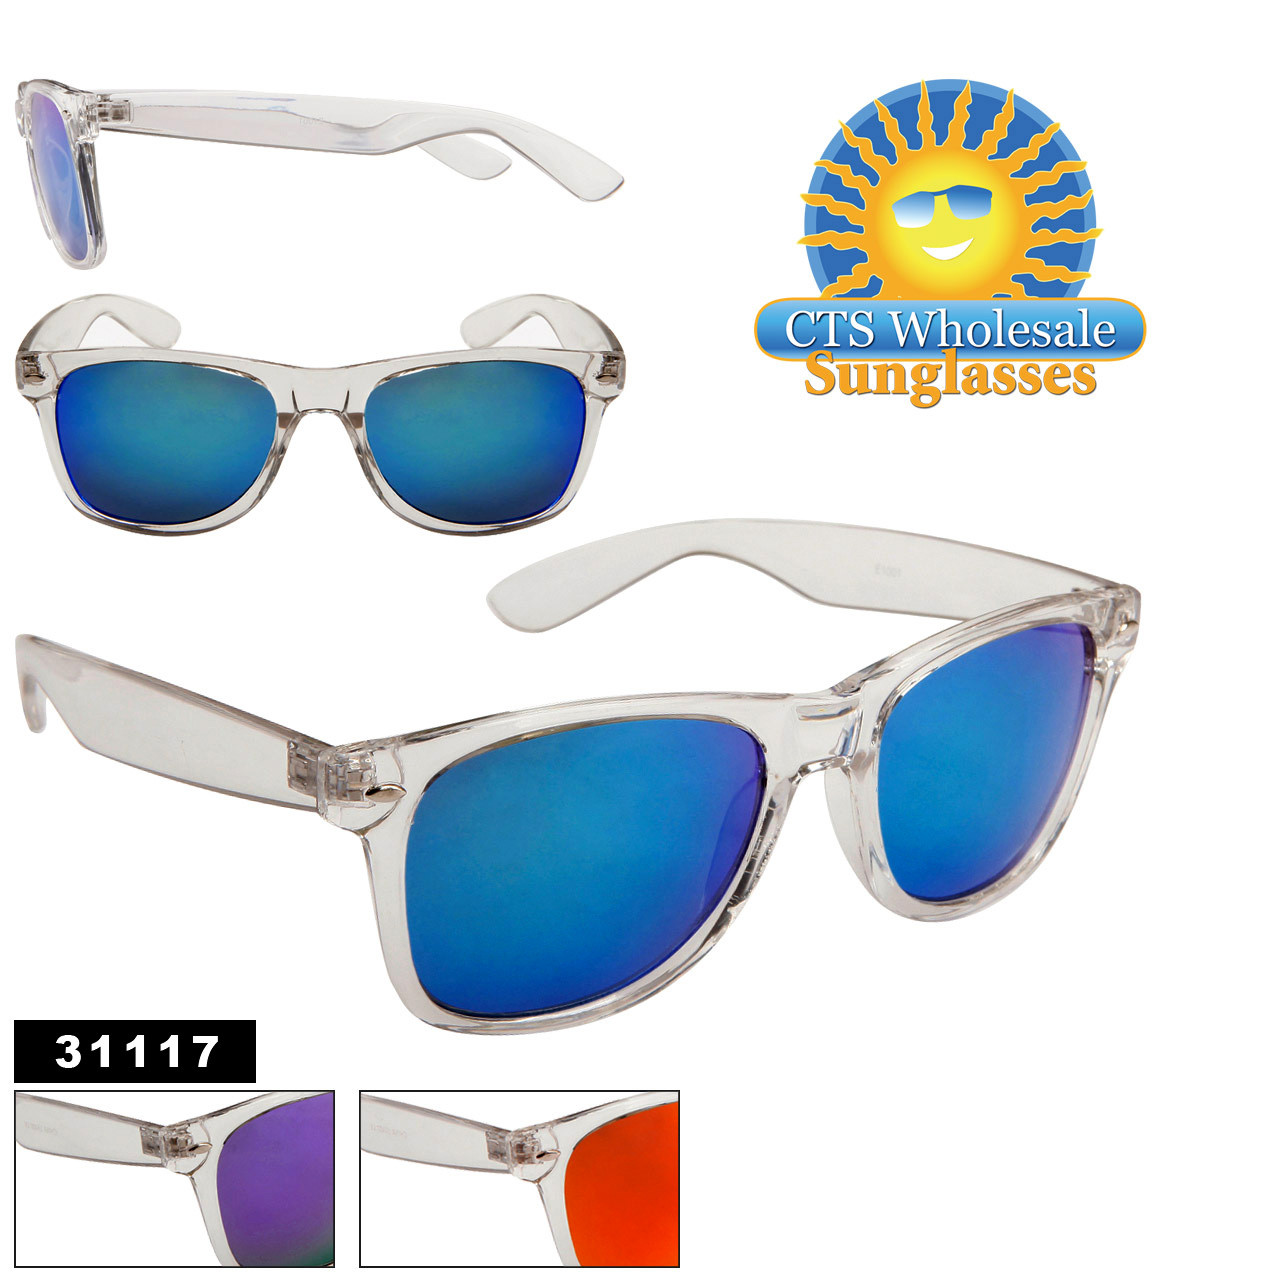 Clear Frame Mirrored Sunglasses Wholesale- Style #31117 (Assorted Colors) (12 pcs.)